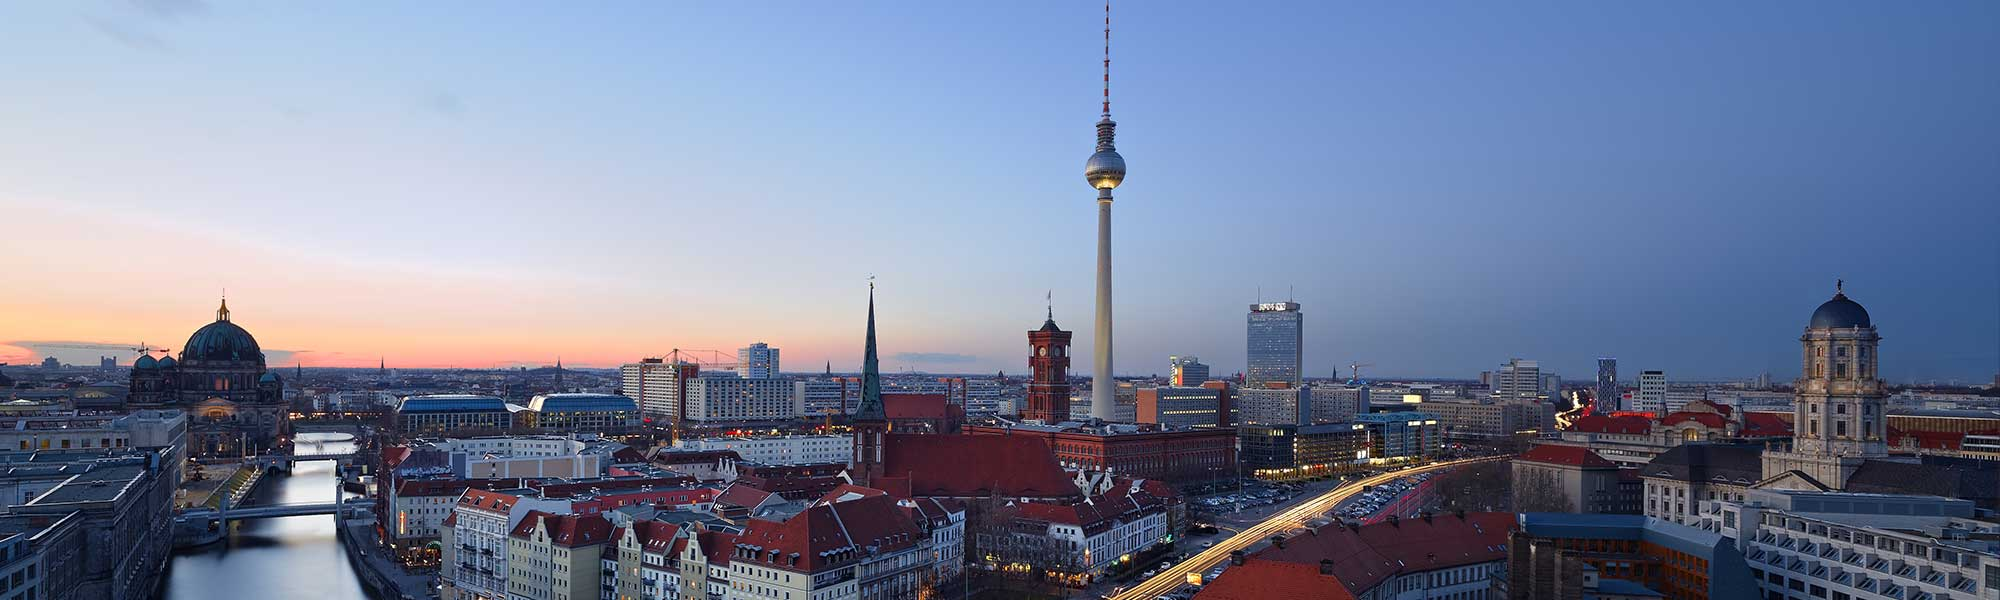 Germany - Berlin - Skyline - Alexander Platz & The Dome - Clean Sunset